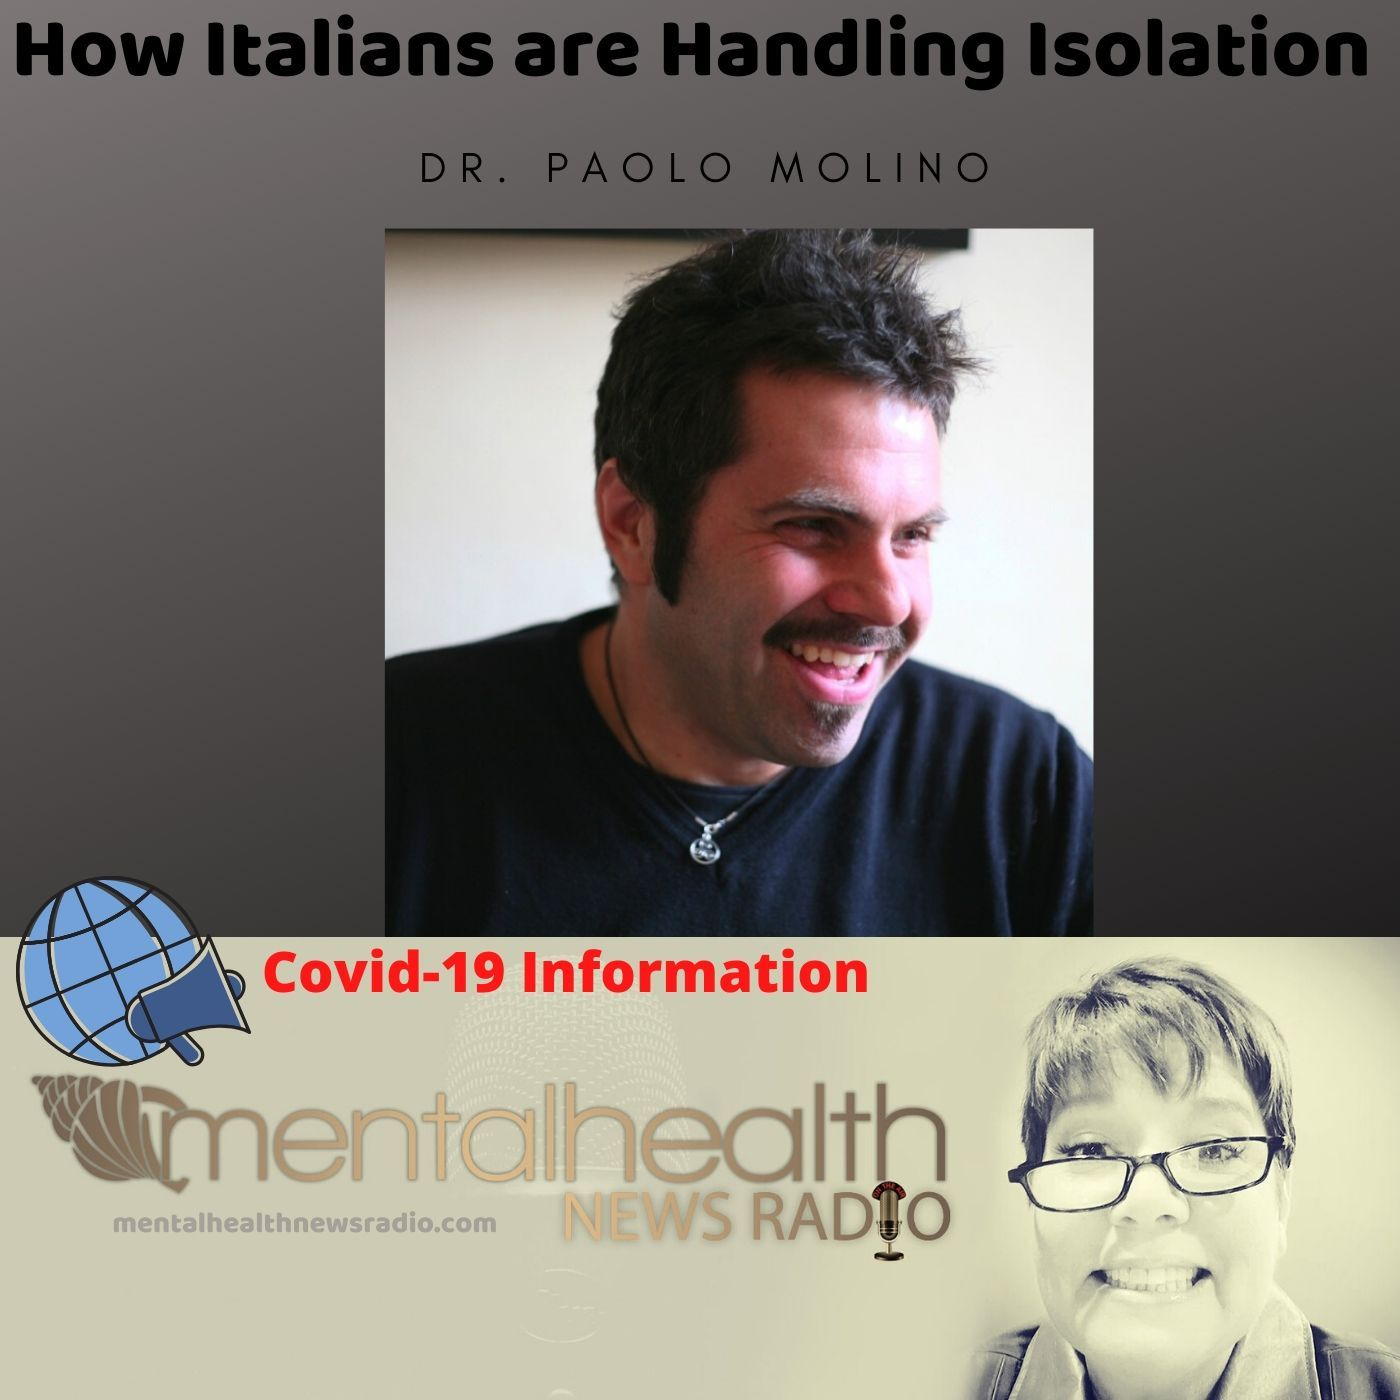 Mental Health News Radio - How Italians are Handling Isolation with Dr. Paolo Molino